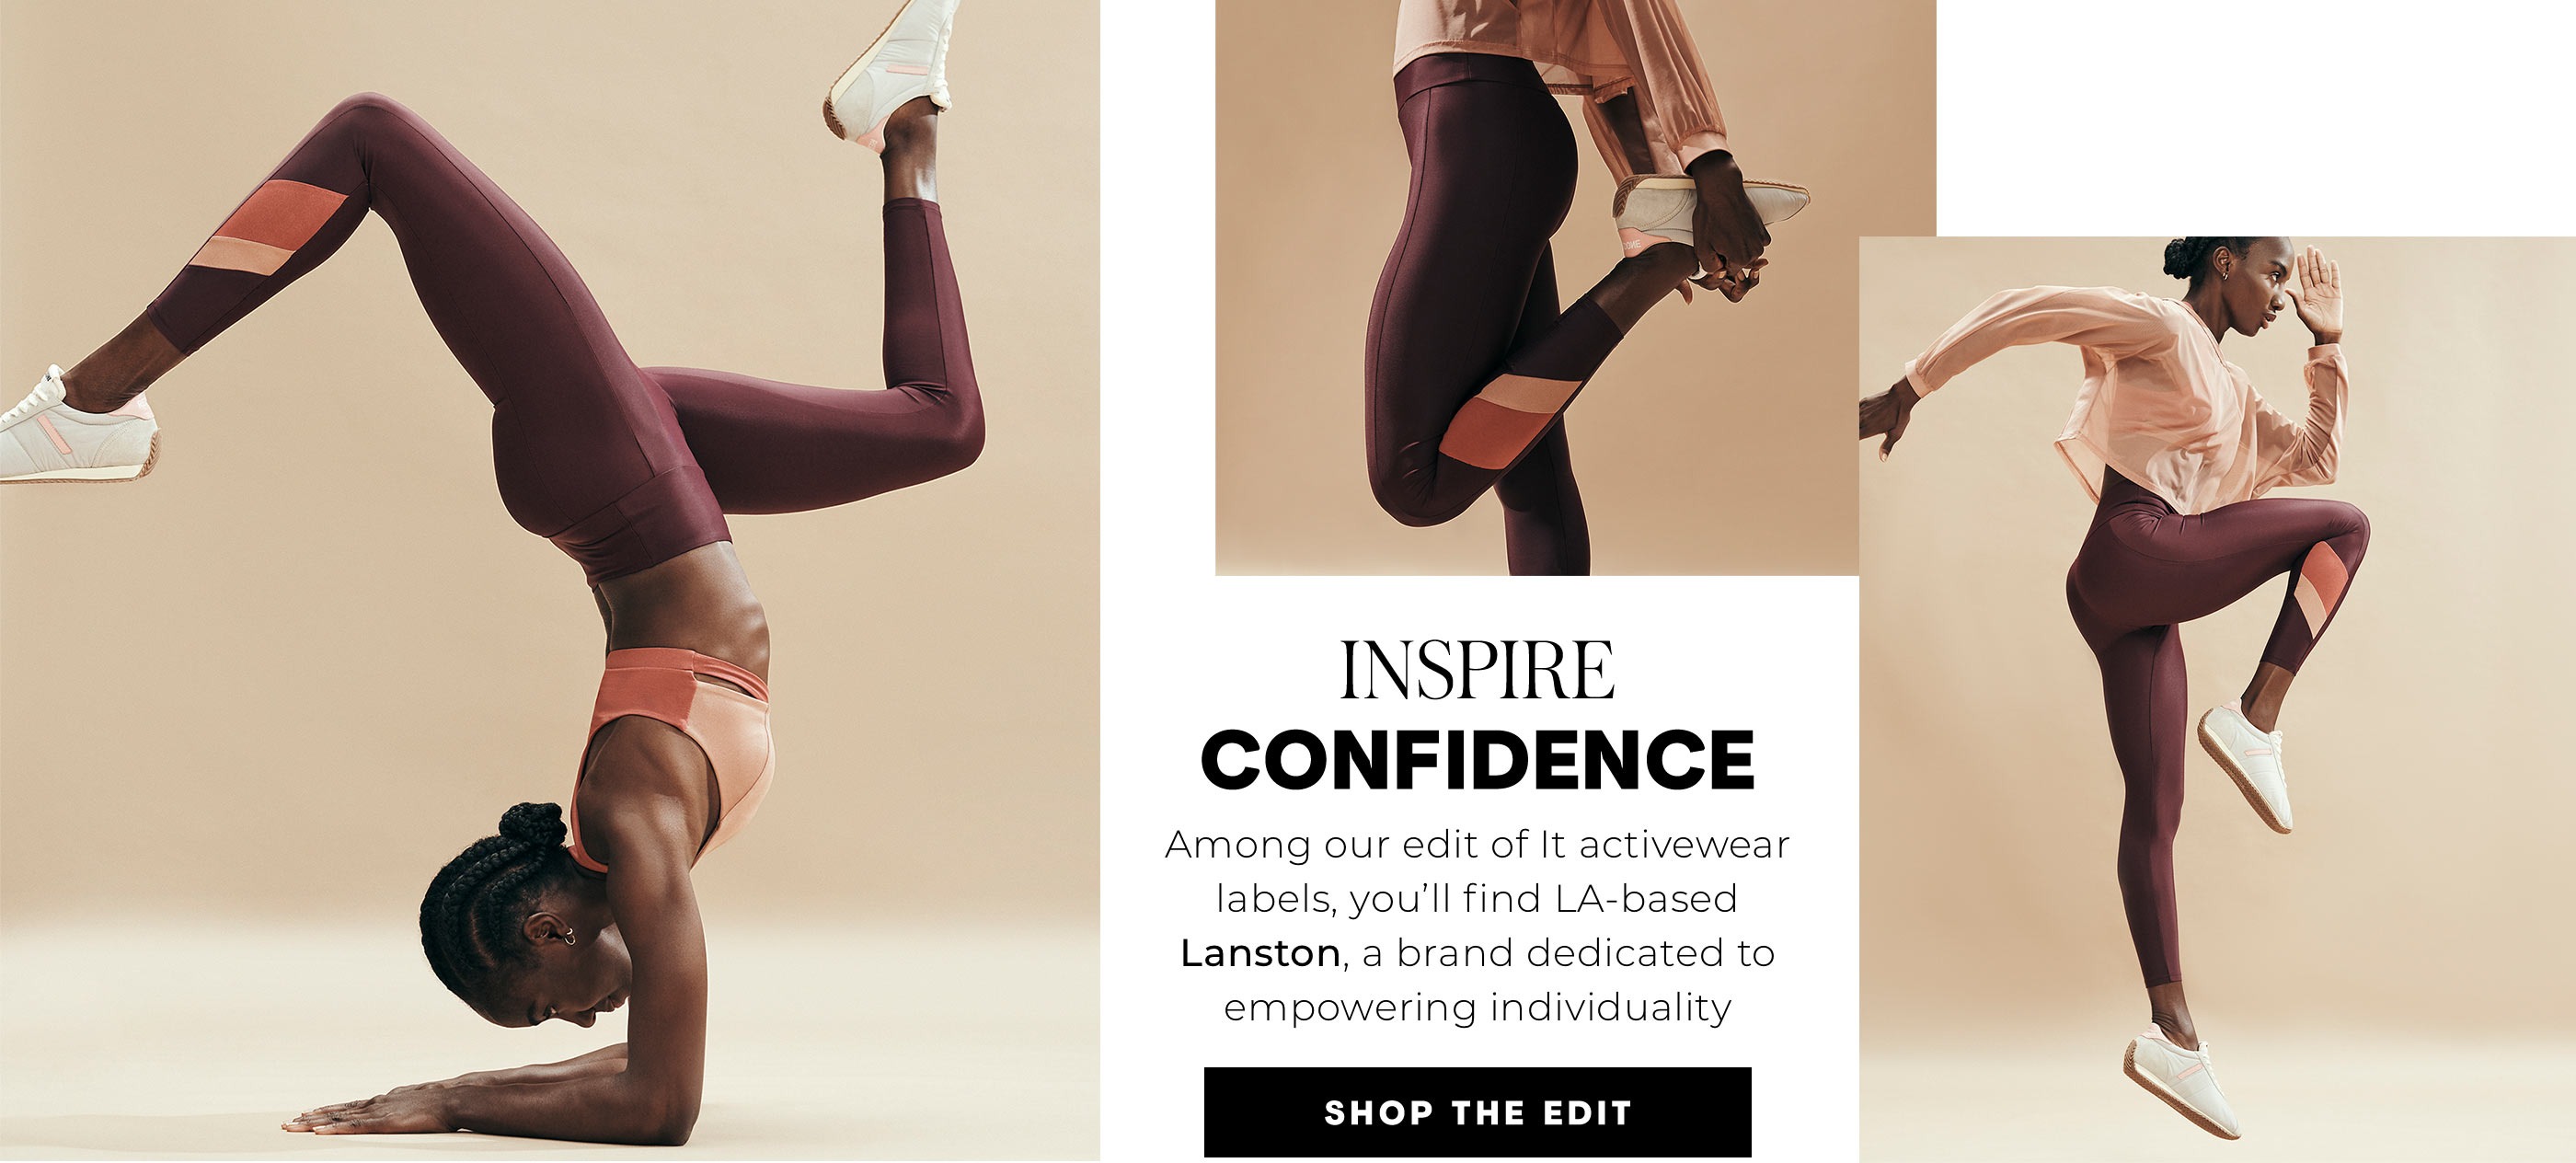 Inspire Confidence Among our edit of It activewear labels, you'll find LA-based Lanston, a brand dedicated to empowering individuality